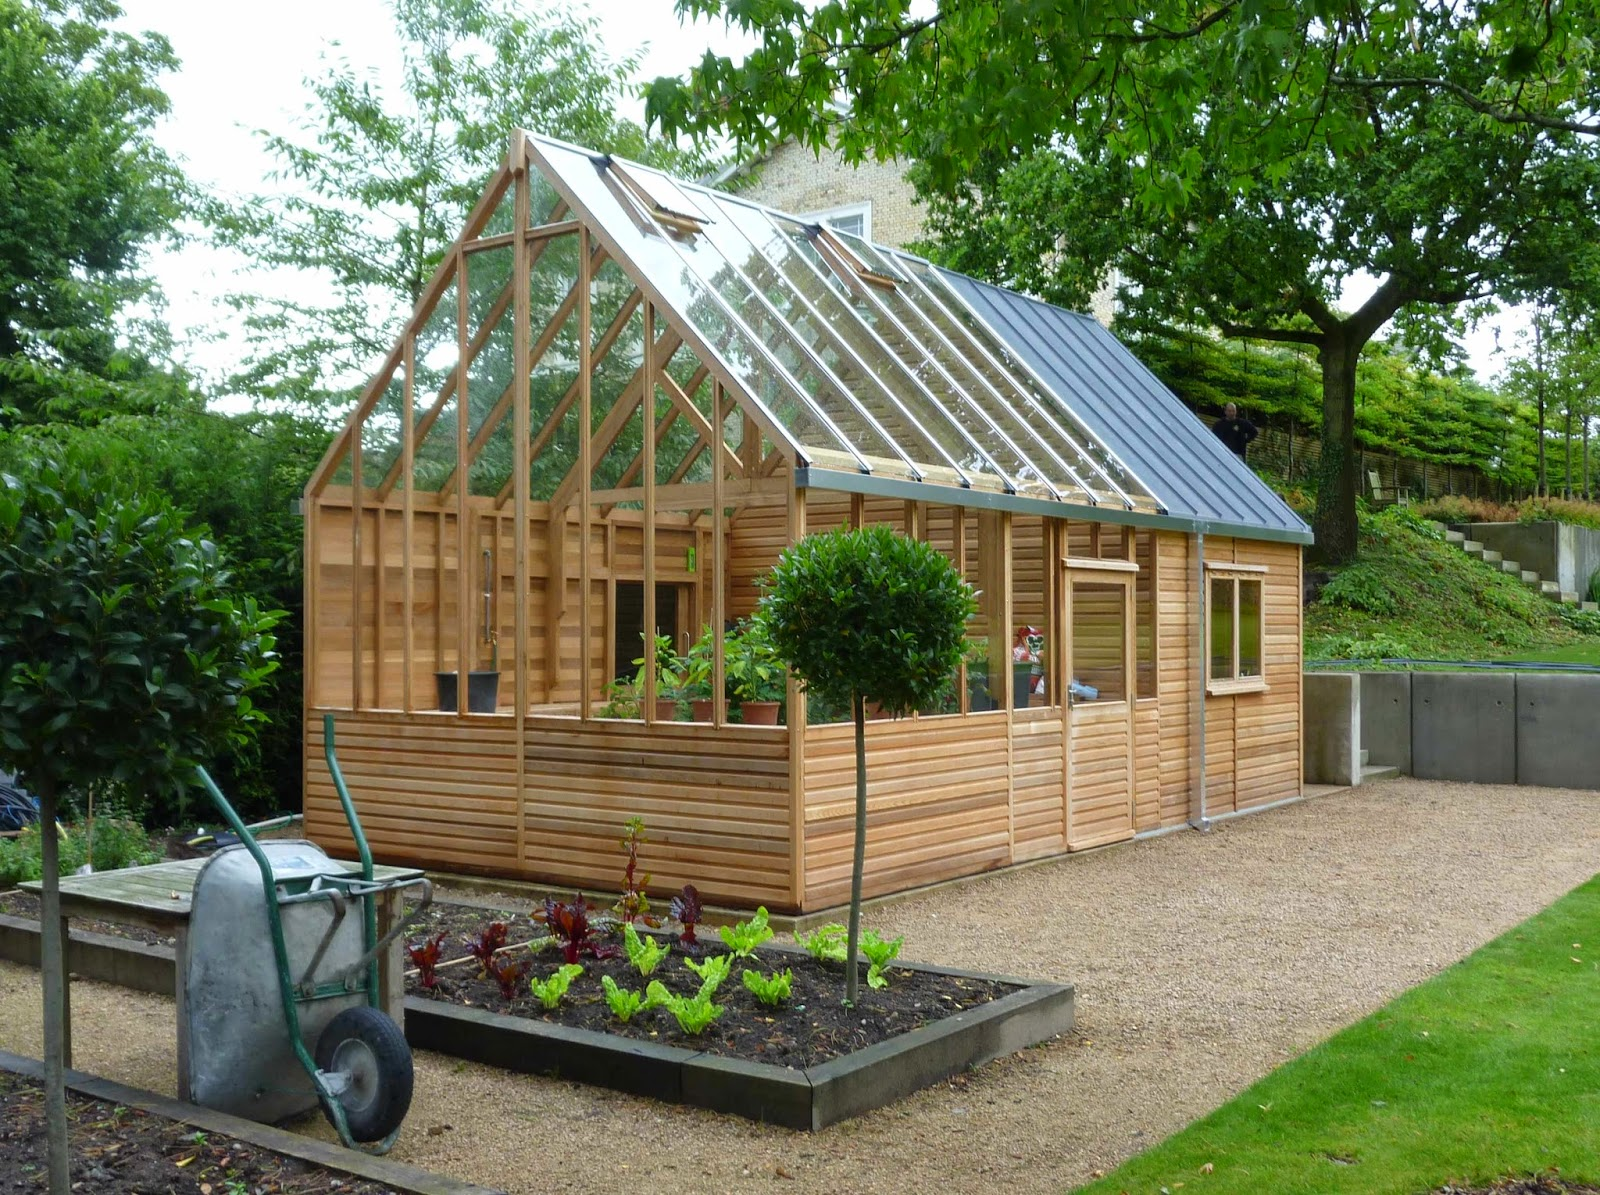 13 Great Diy Greenhouse Ideas Instant Knowledge: small green home plans